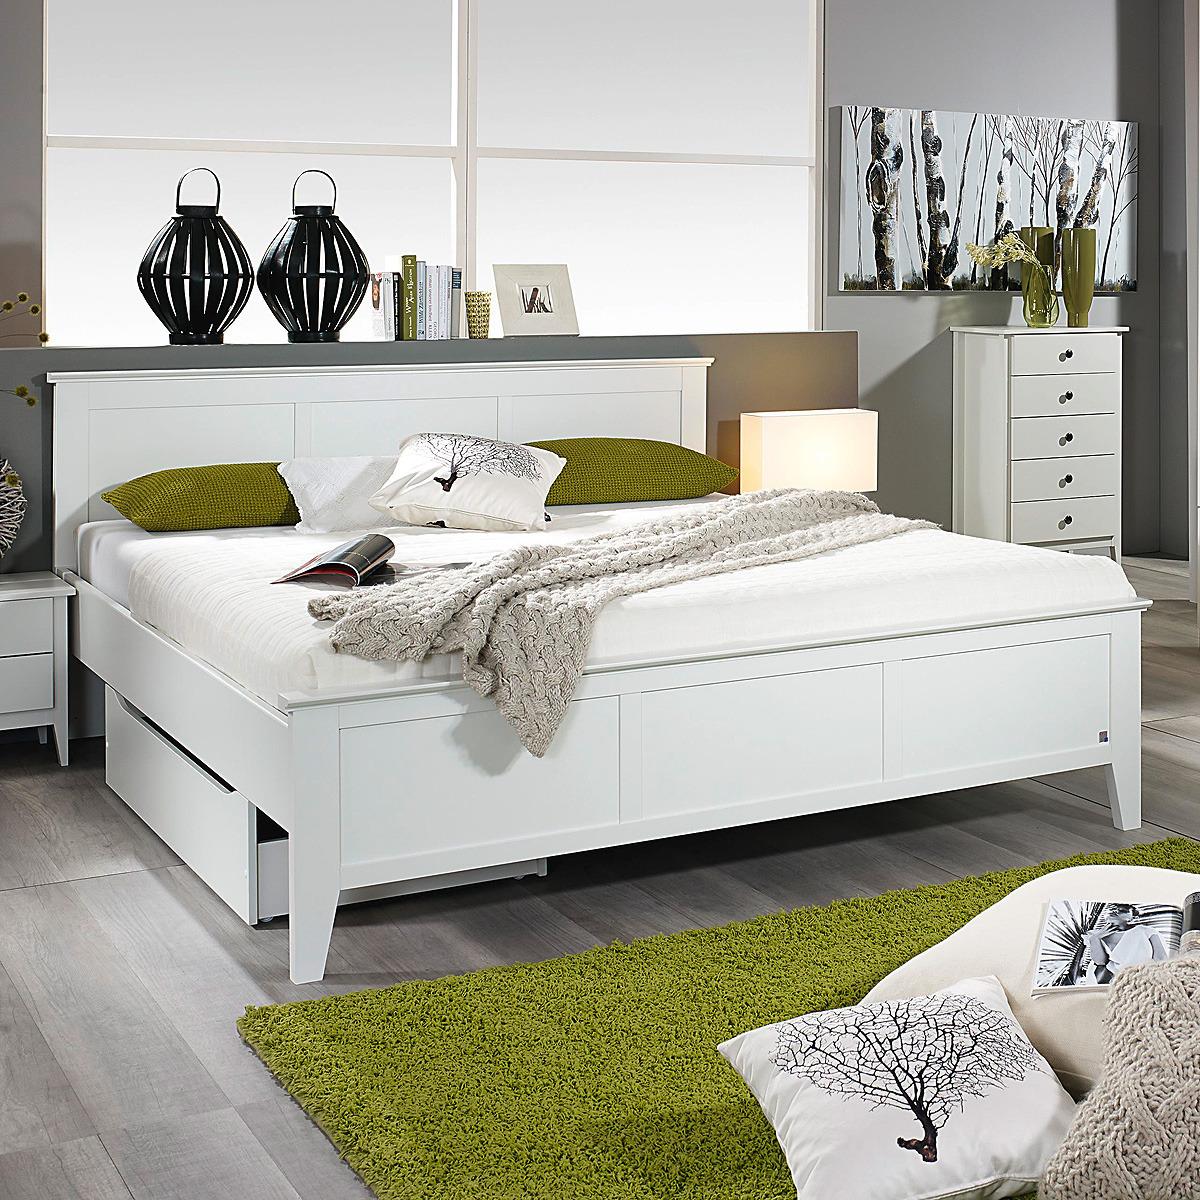 bett rosenheim schlafzimmerbett bettgestell doppelbett in. Black Bedroom Furniture Sets. Home Design Ideas